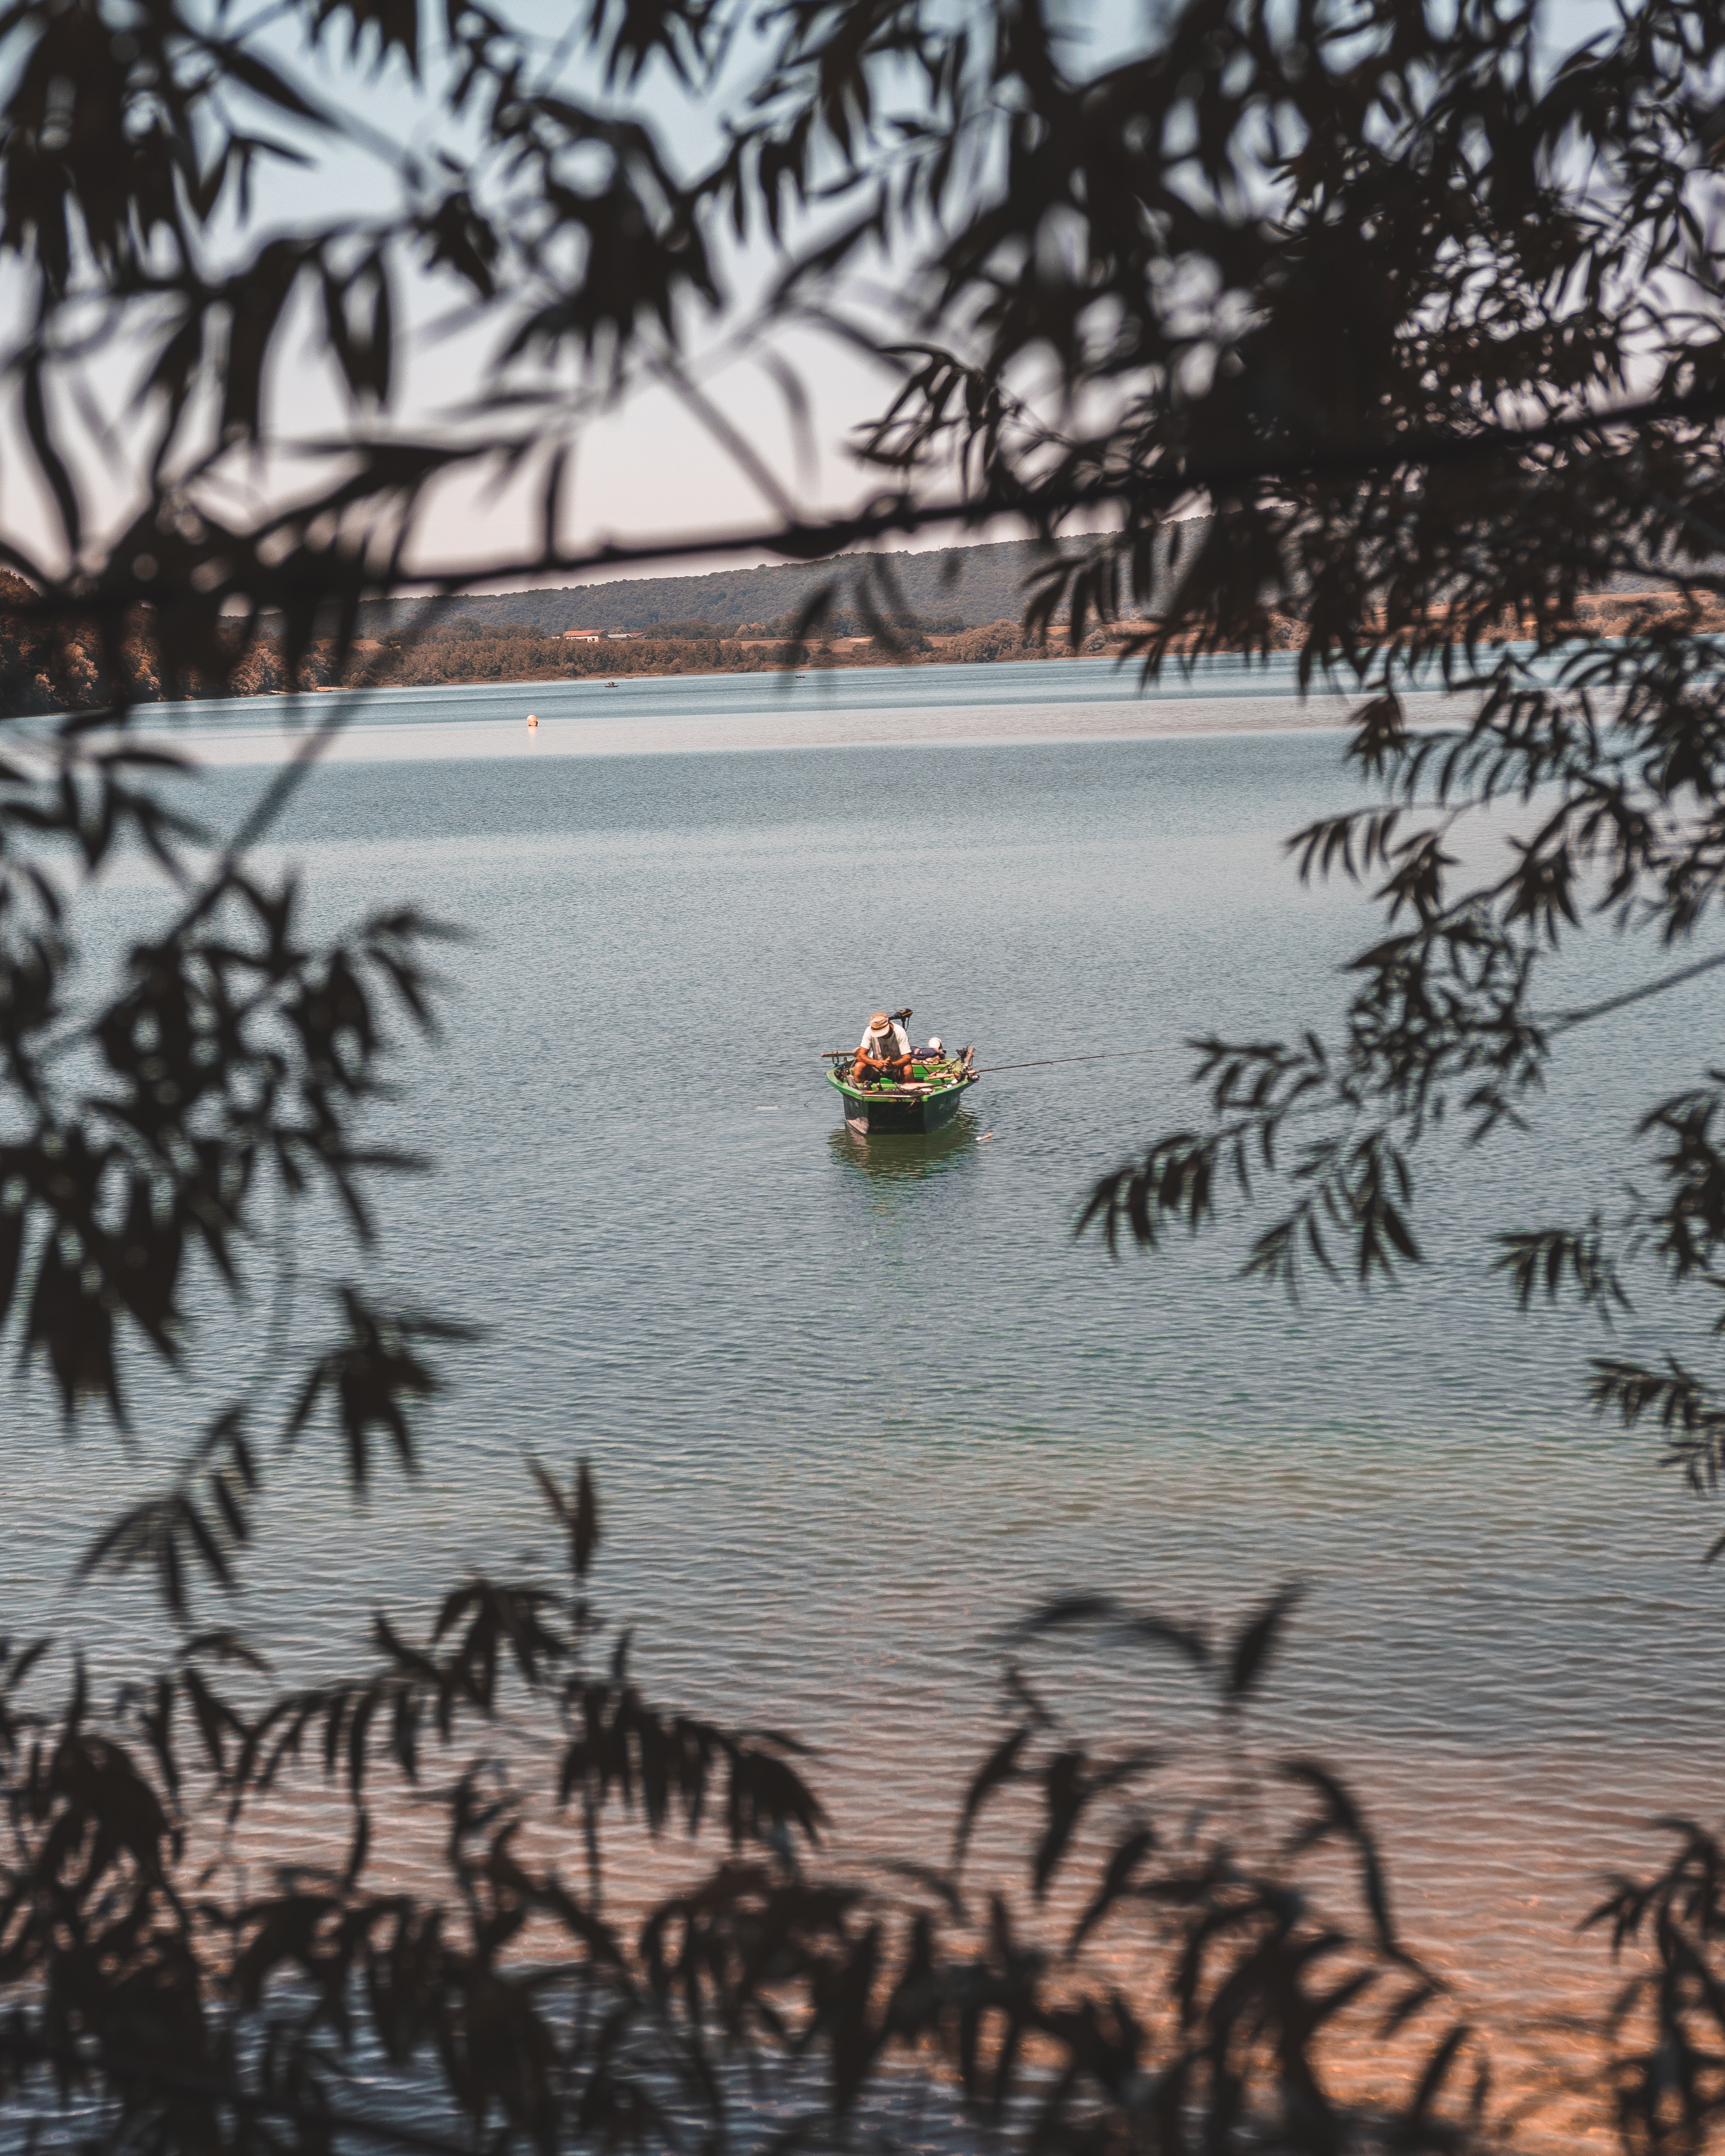 brown boat on body of water